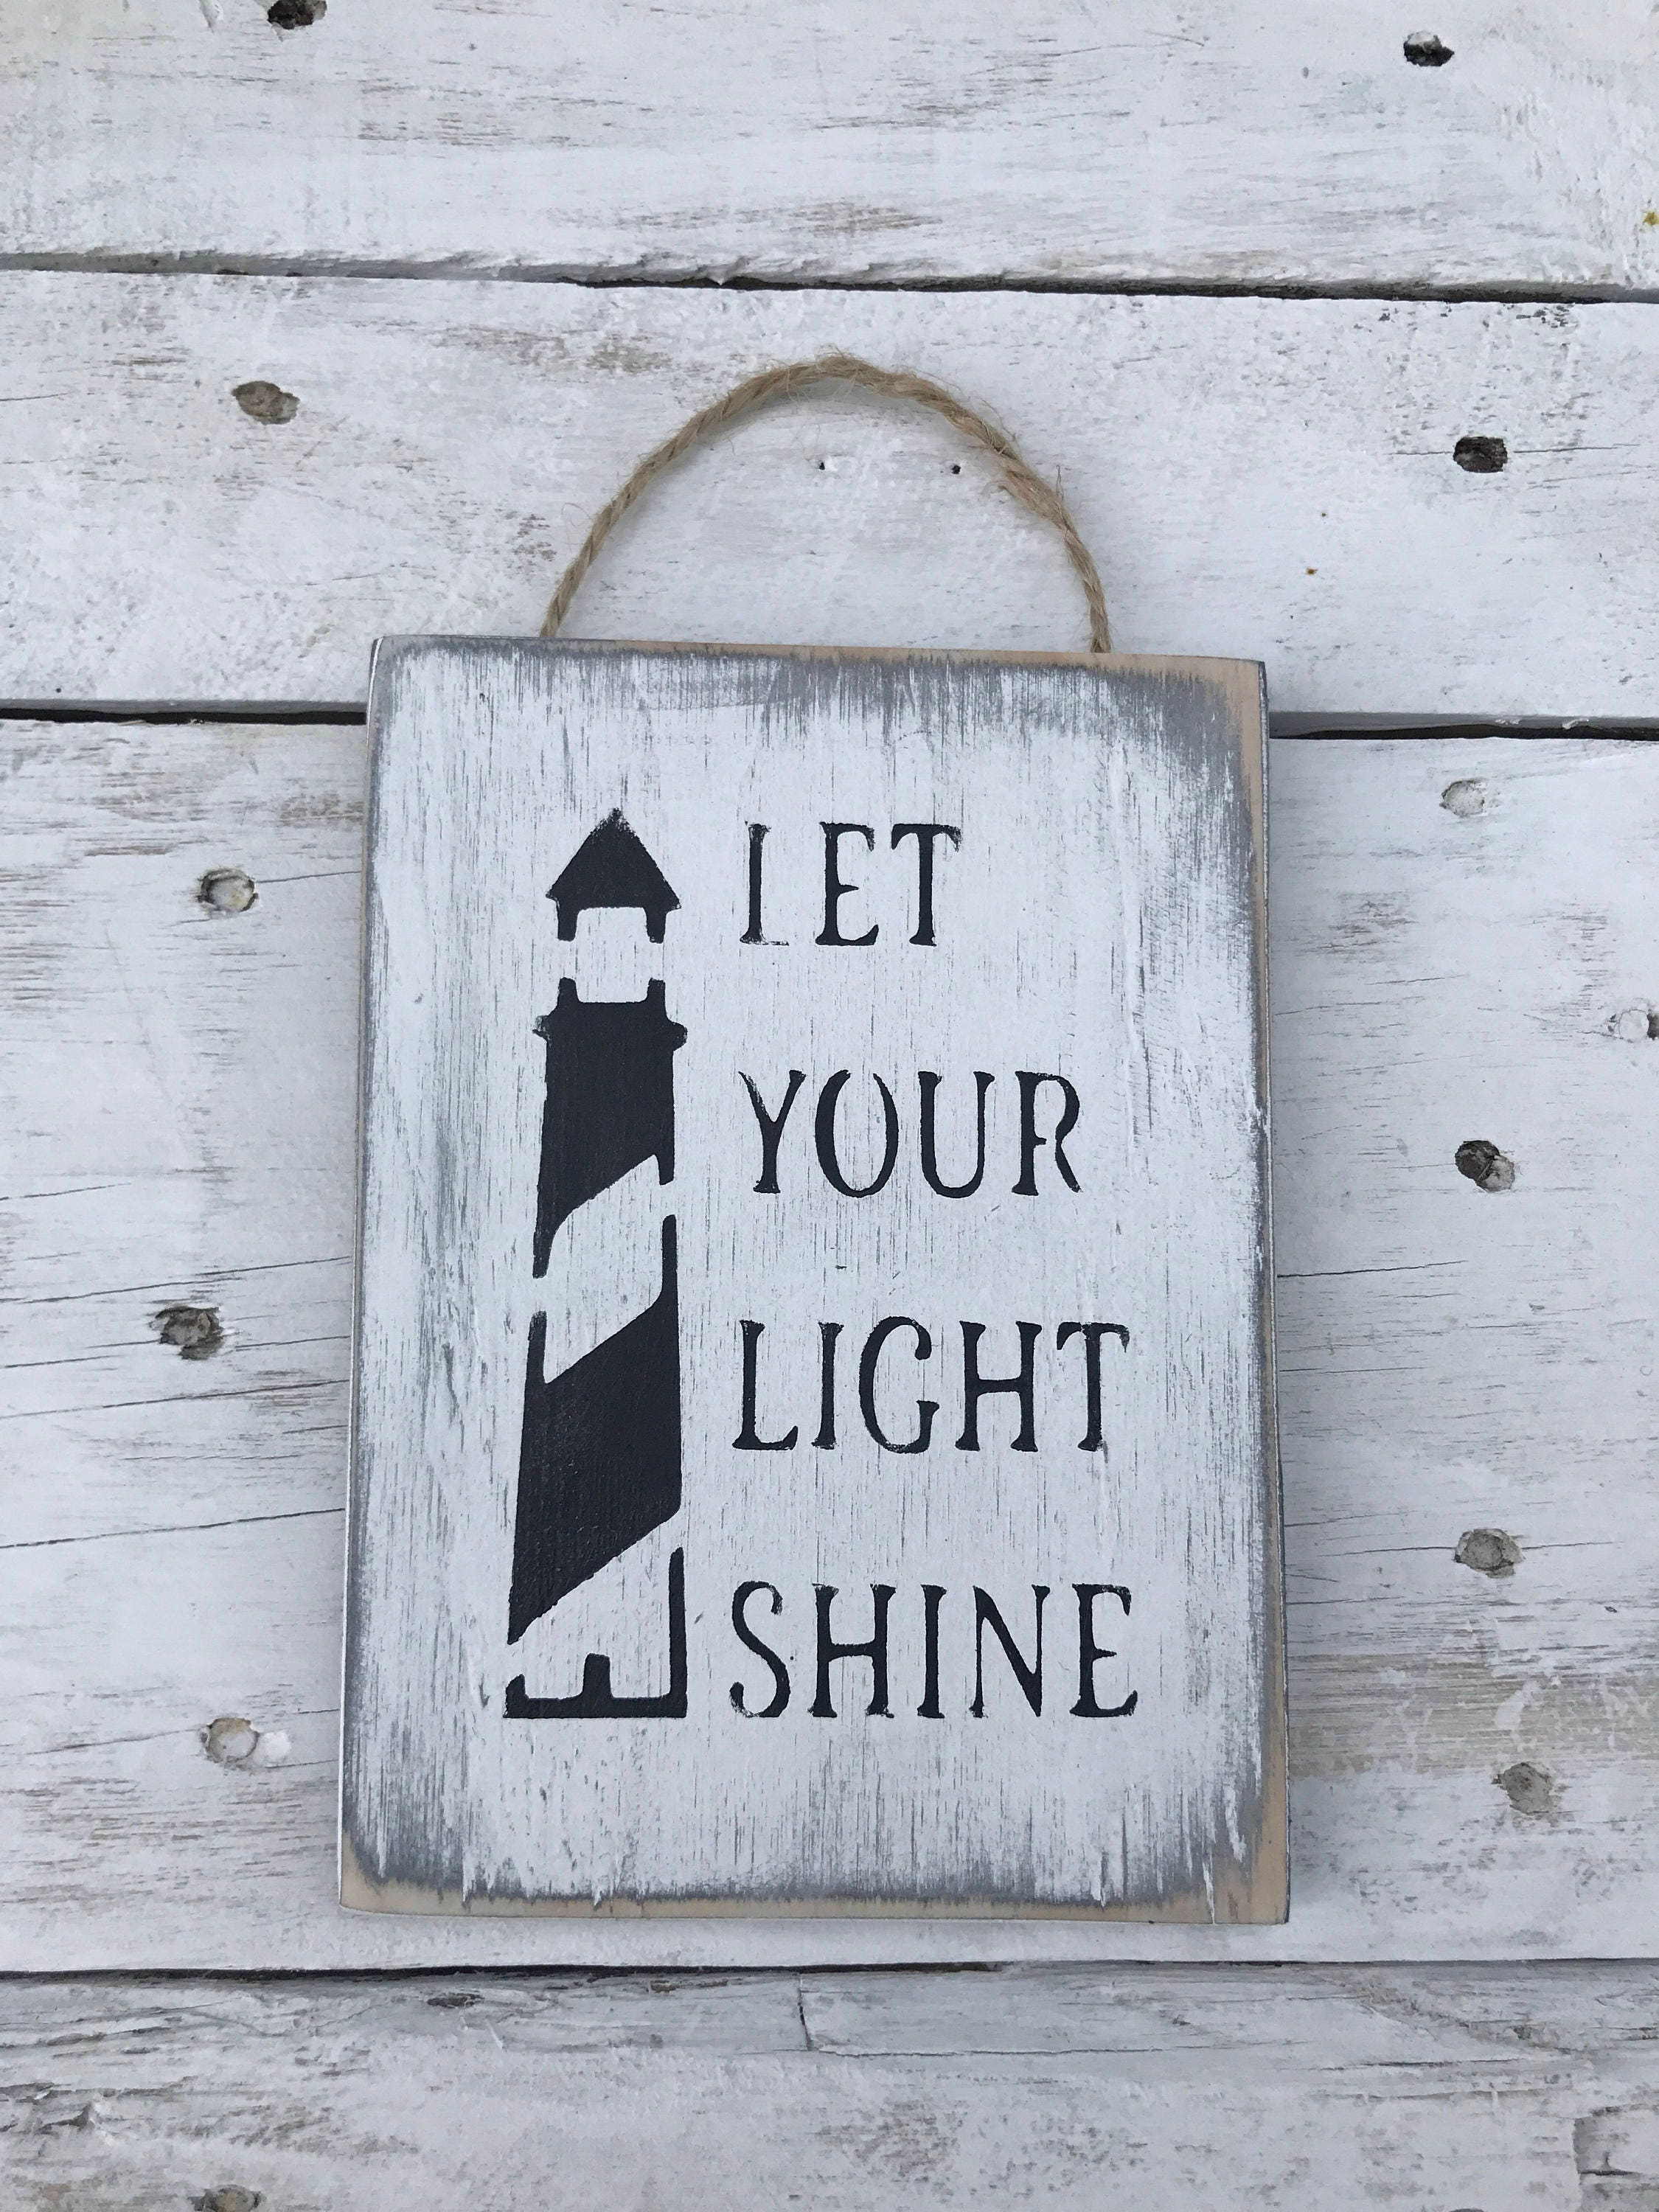 Let Your Light Shine - Inspirational Quote Motivational Signs Wooden ...